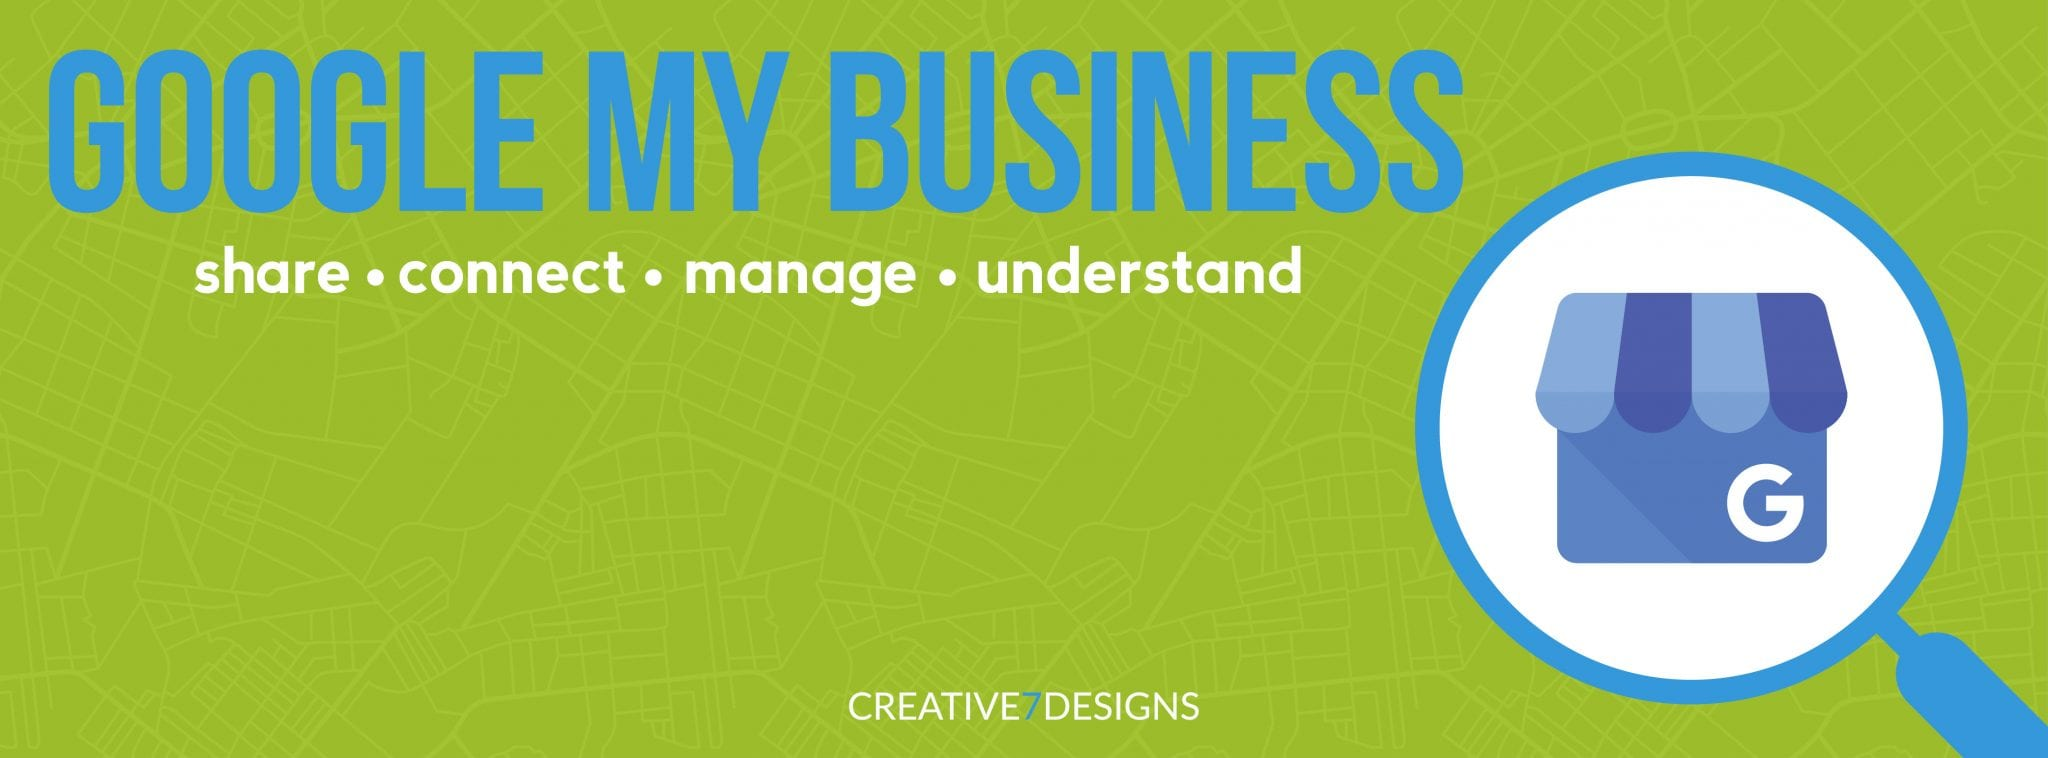 Google My Business: Share, Connect, Manage, Understand